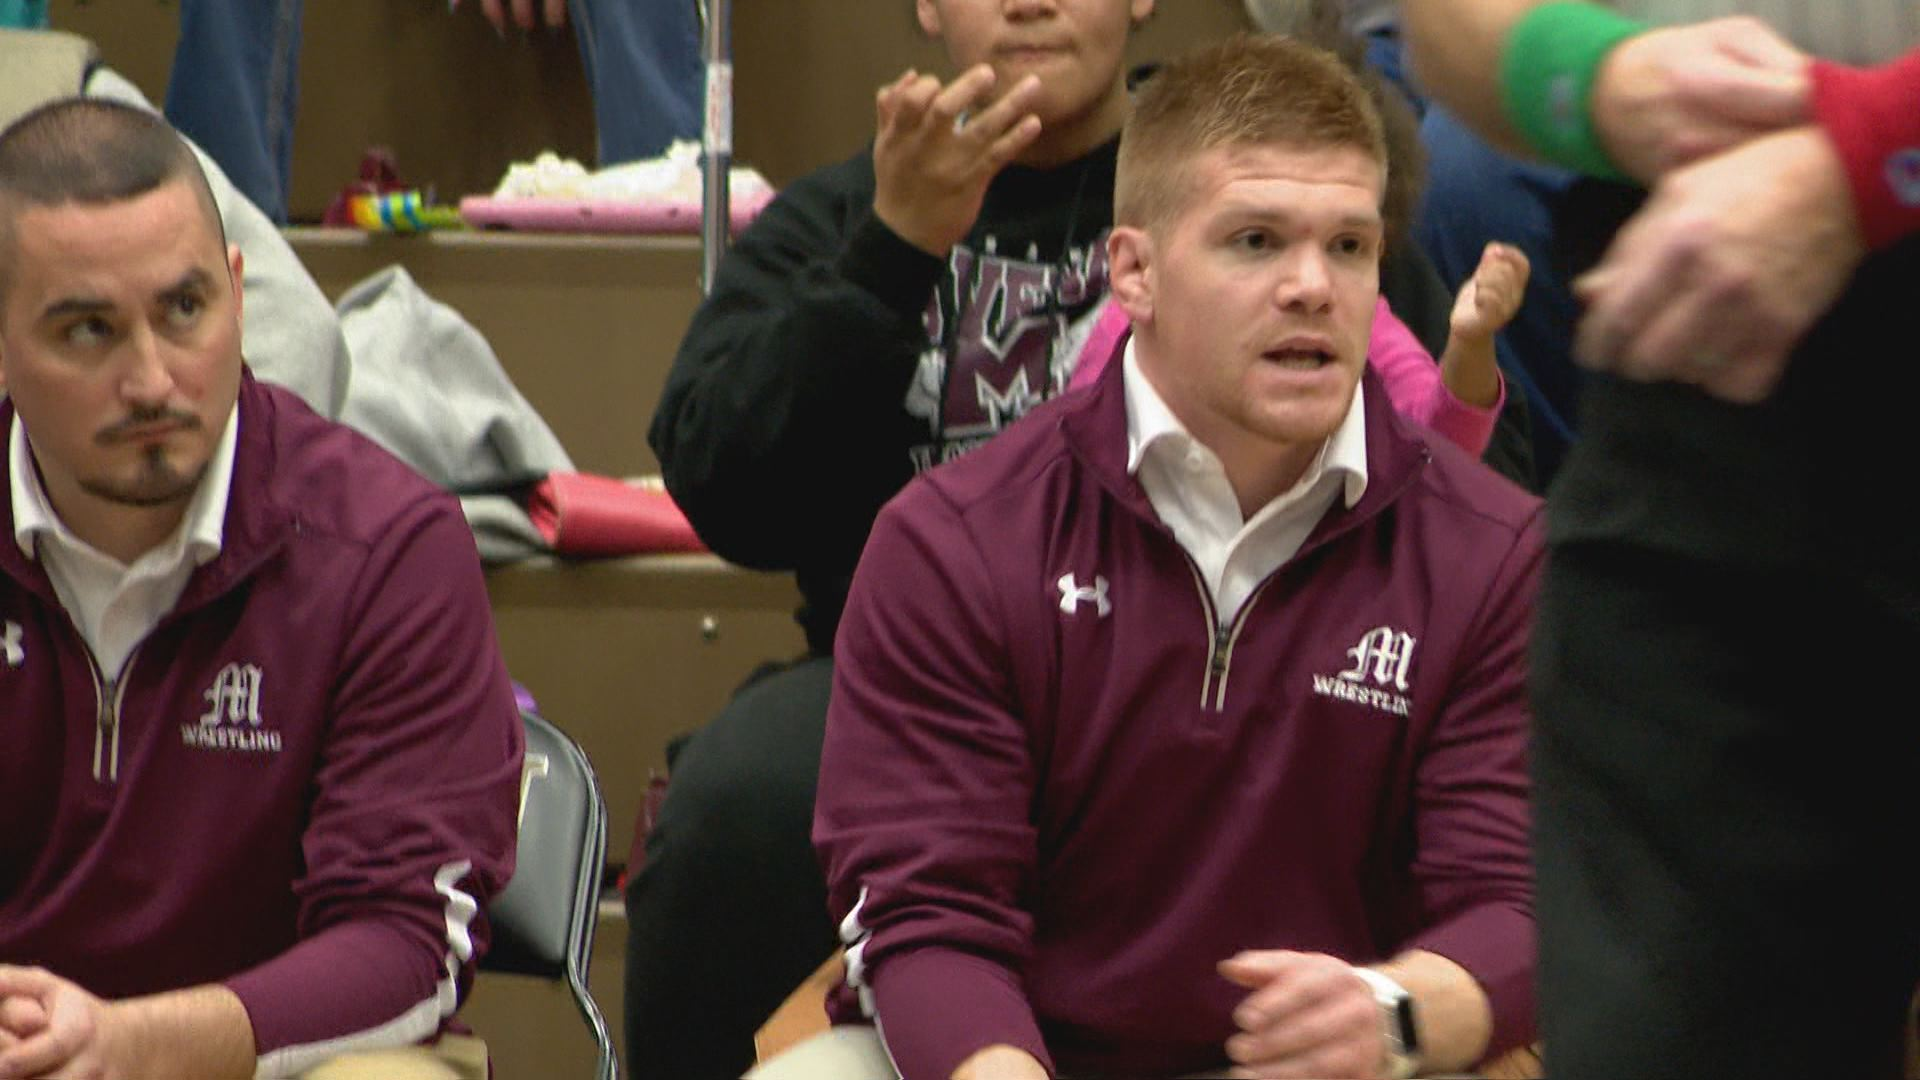 New Mishawaka wrestling coach Steve Sandefer, leading the Cavemen against rival Penn tonight on the wrestling mat in the Backyard Brawl // WSBT 22 Photo<p></p>